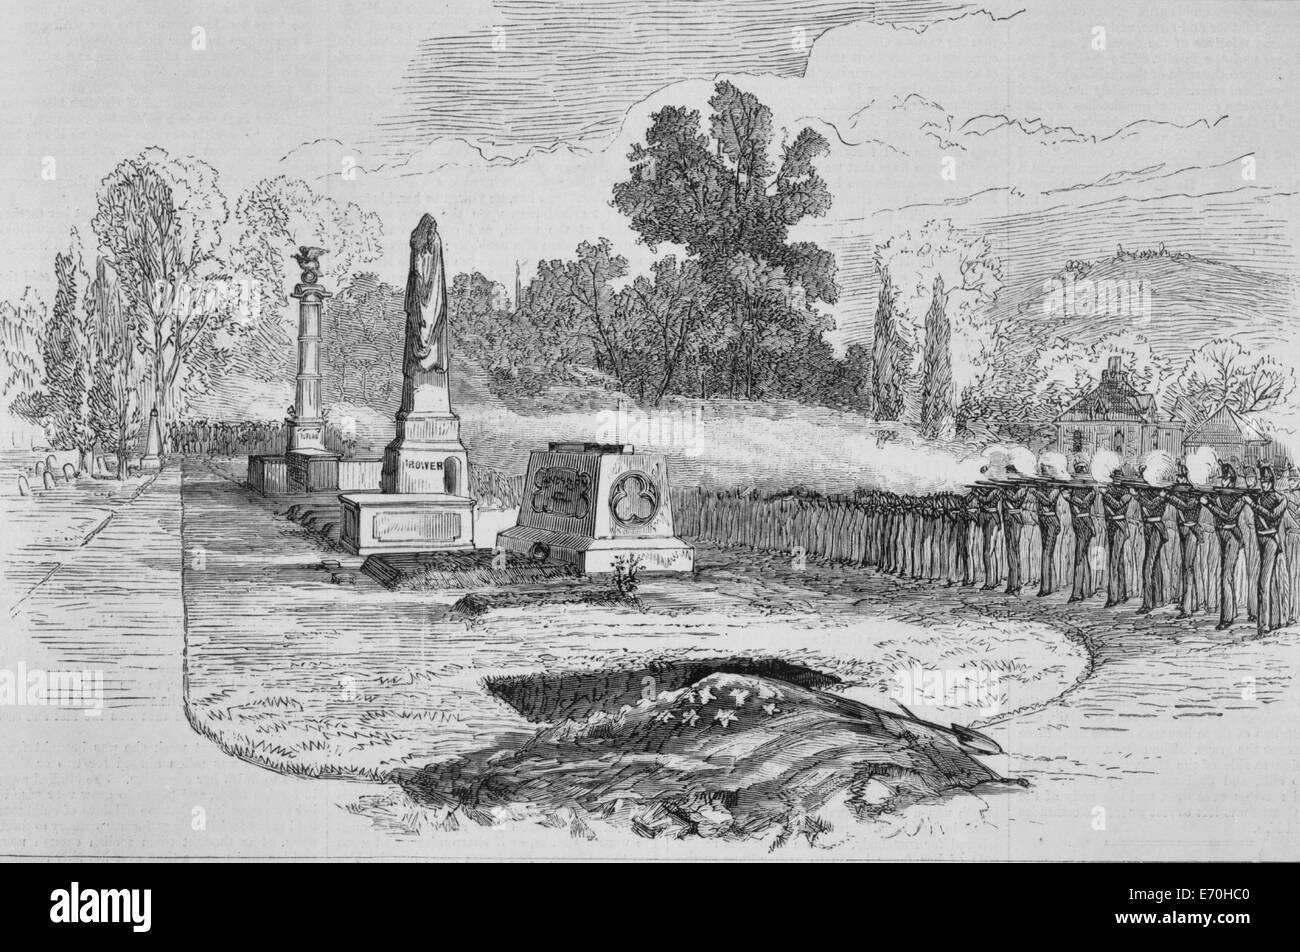 The Last honors of the grave - Burial of General Custer at West Point - 1887 - Stock Image